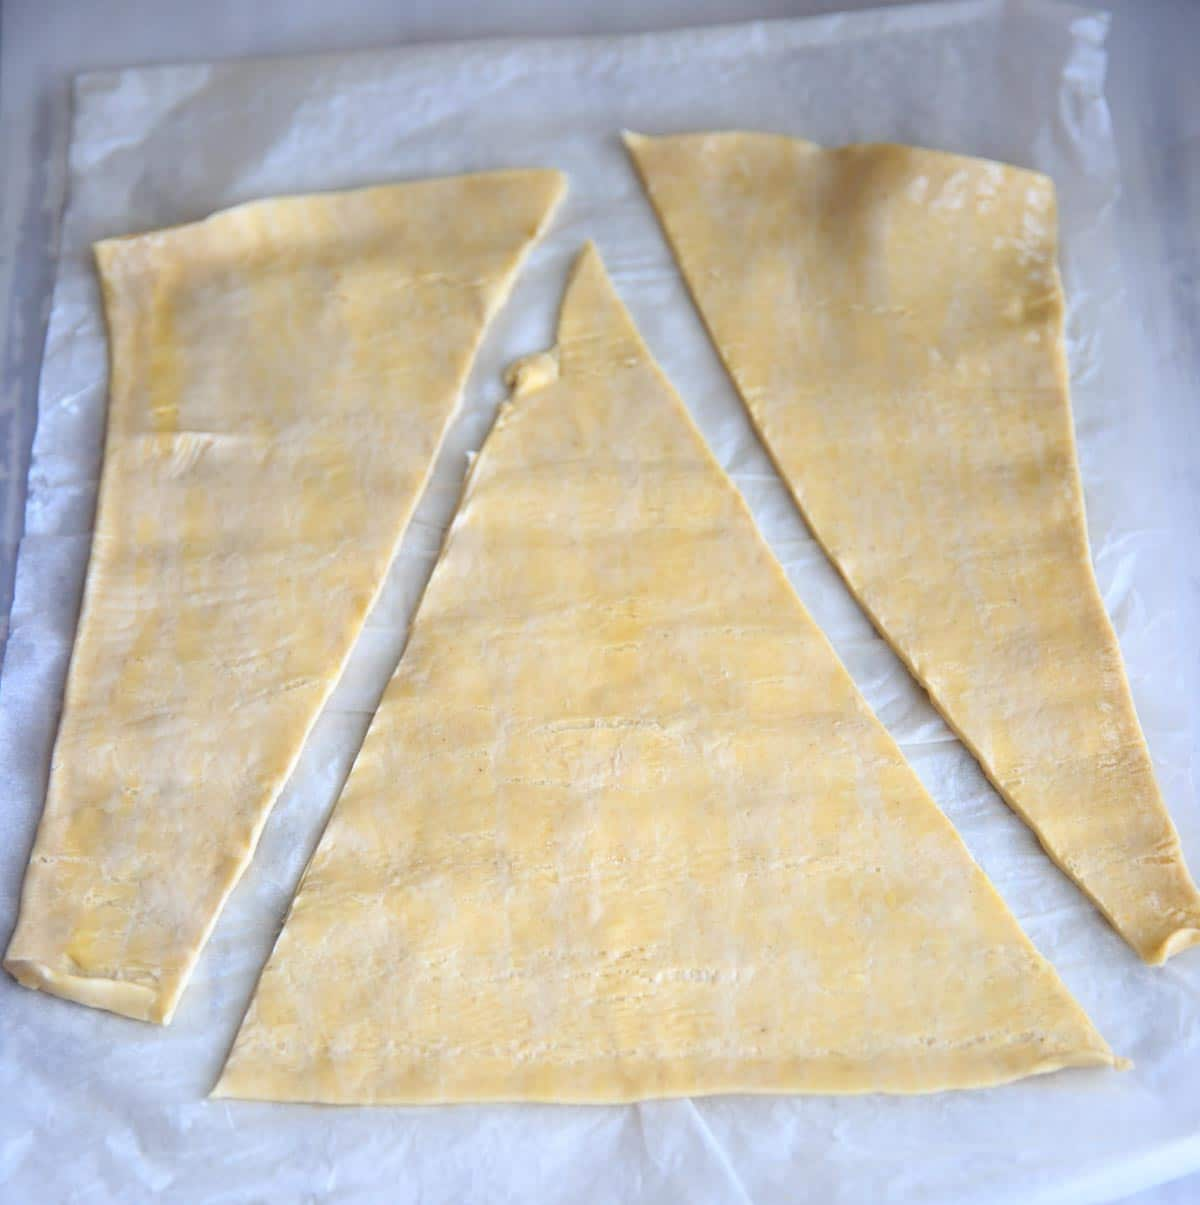 Cutting the puff pastry into a triangle